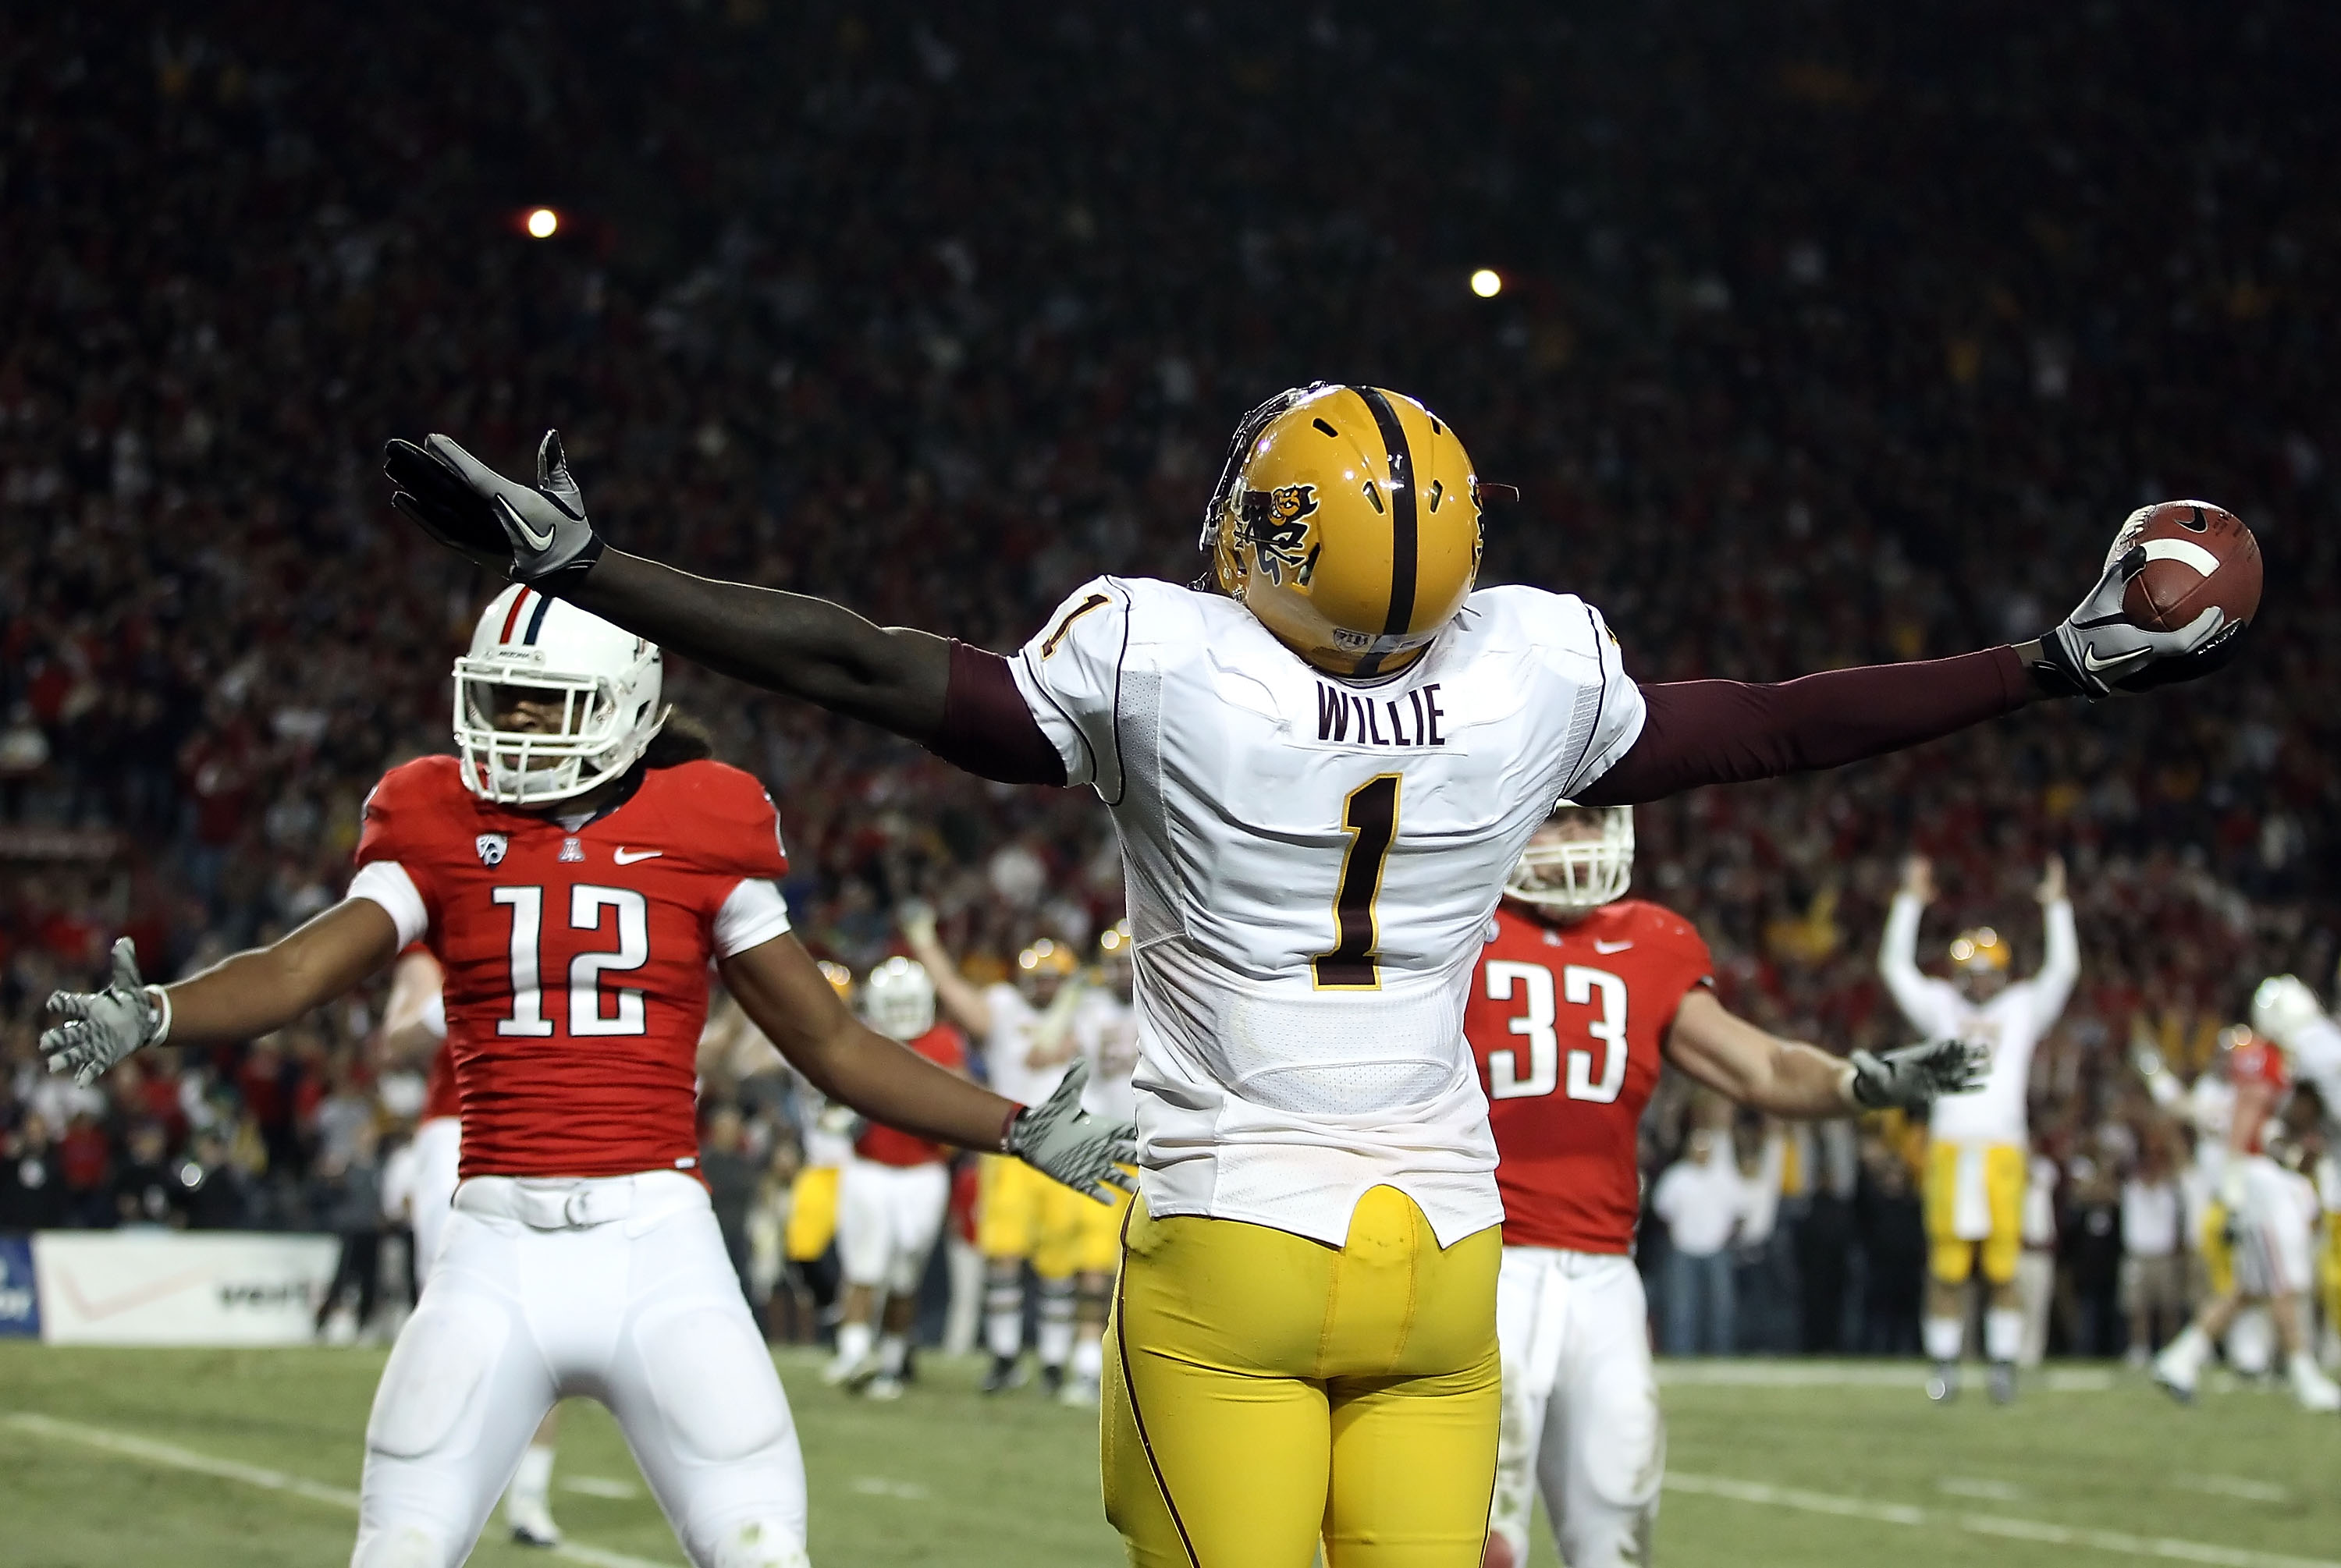 TUCSON, AZ - DECEMBER 02:  Wide receiver Mike Willie #1 of the Arizona State Sun Devils celebrates after scoring a touchdown reception during the college football game at Arizona Stadium on December 2, 2010 in Tucson, Arizona. The Sun Devils defeated the